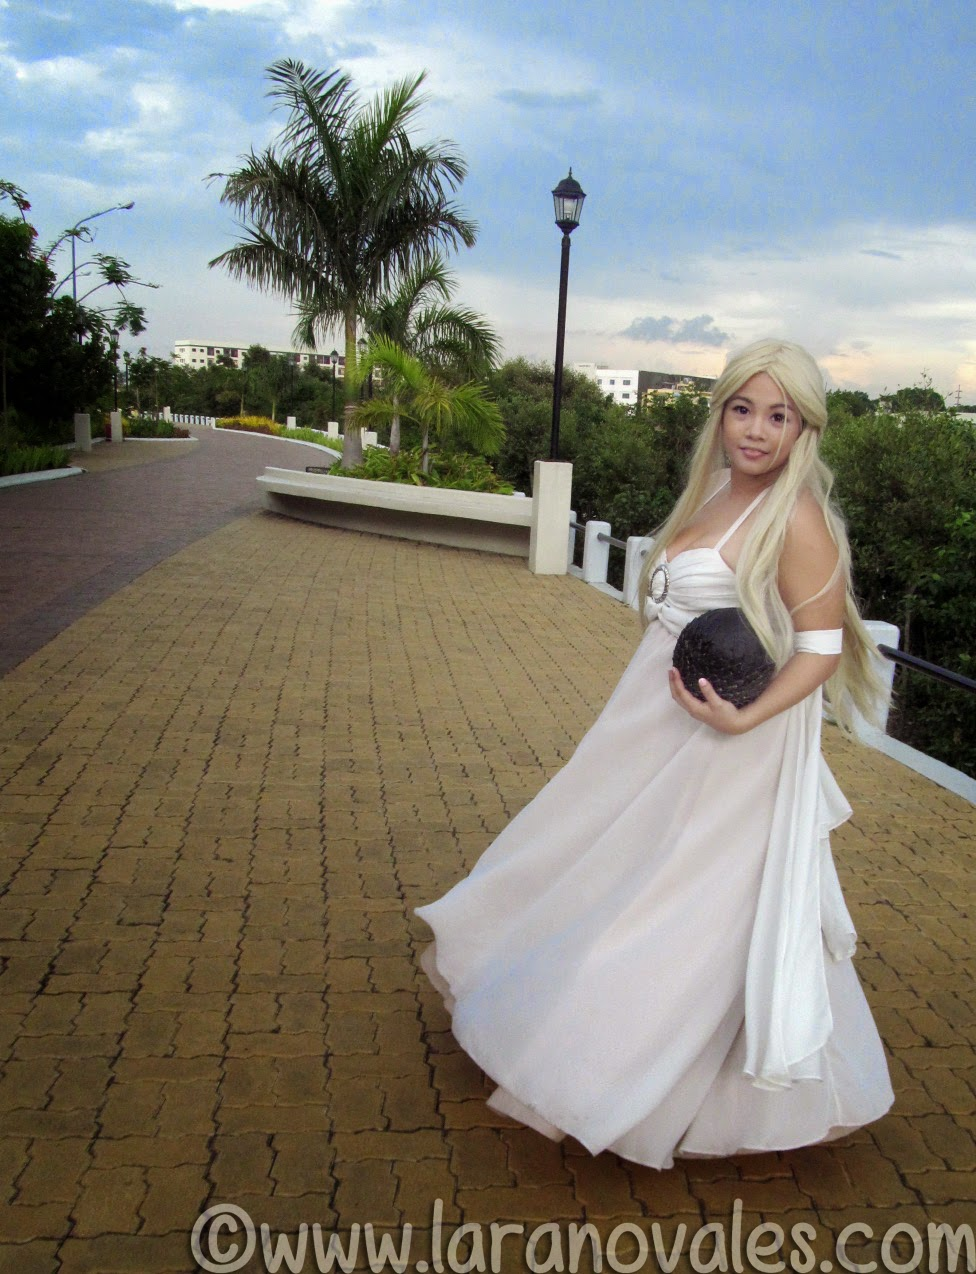 Lara Novales as Daenerys Targaryen Cosplay at ICCON 2014